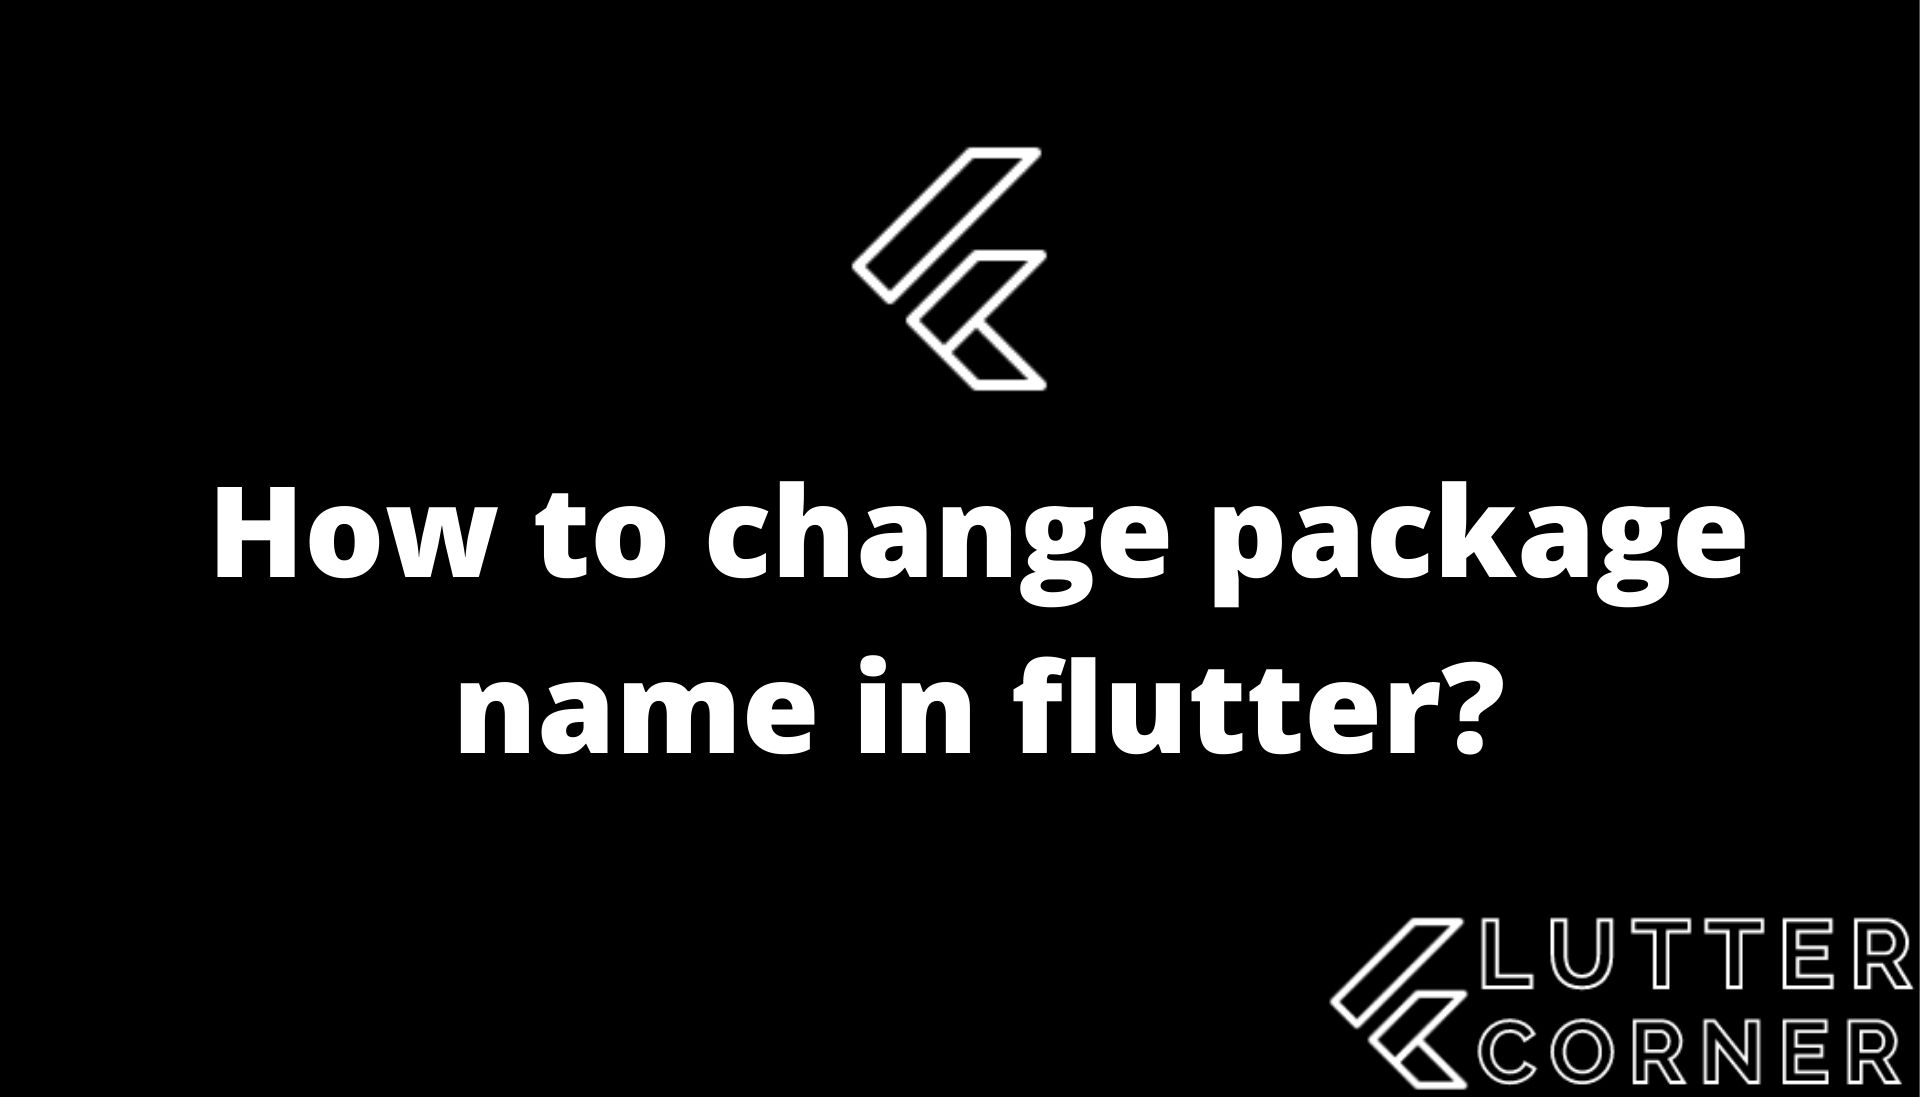 change package name in flutter, how to change the package name in flutter, package name in flutter, package name in flutter for android, change package name flutter